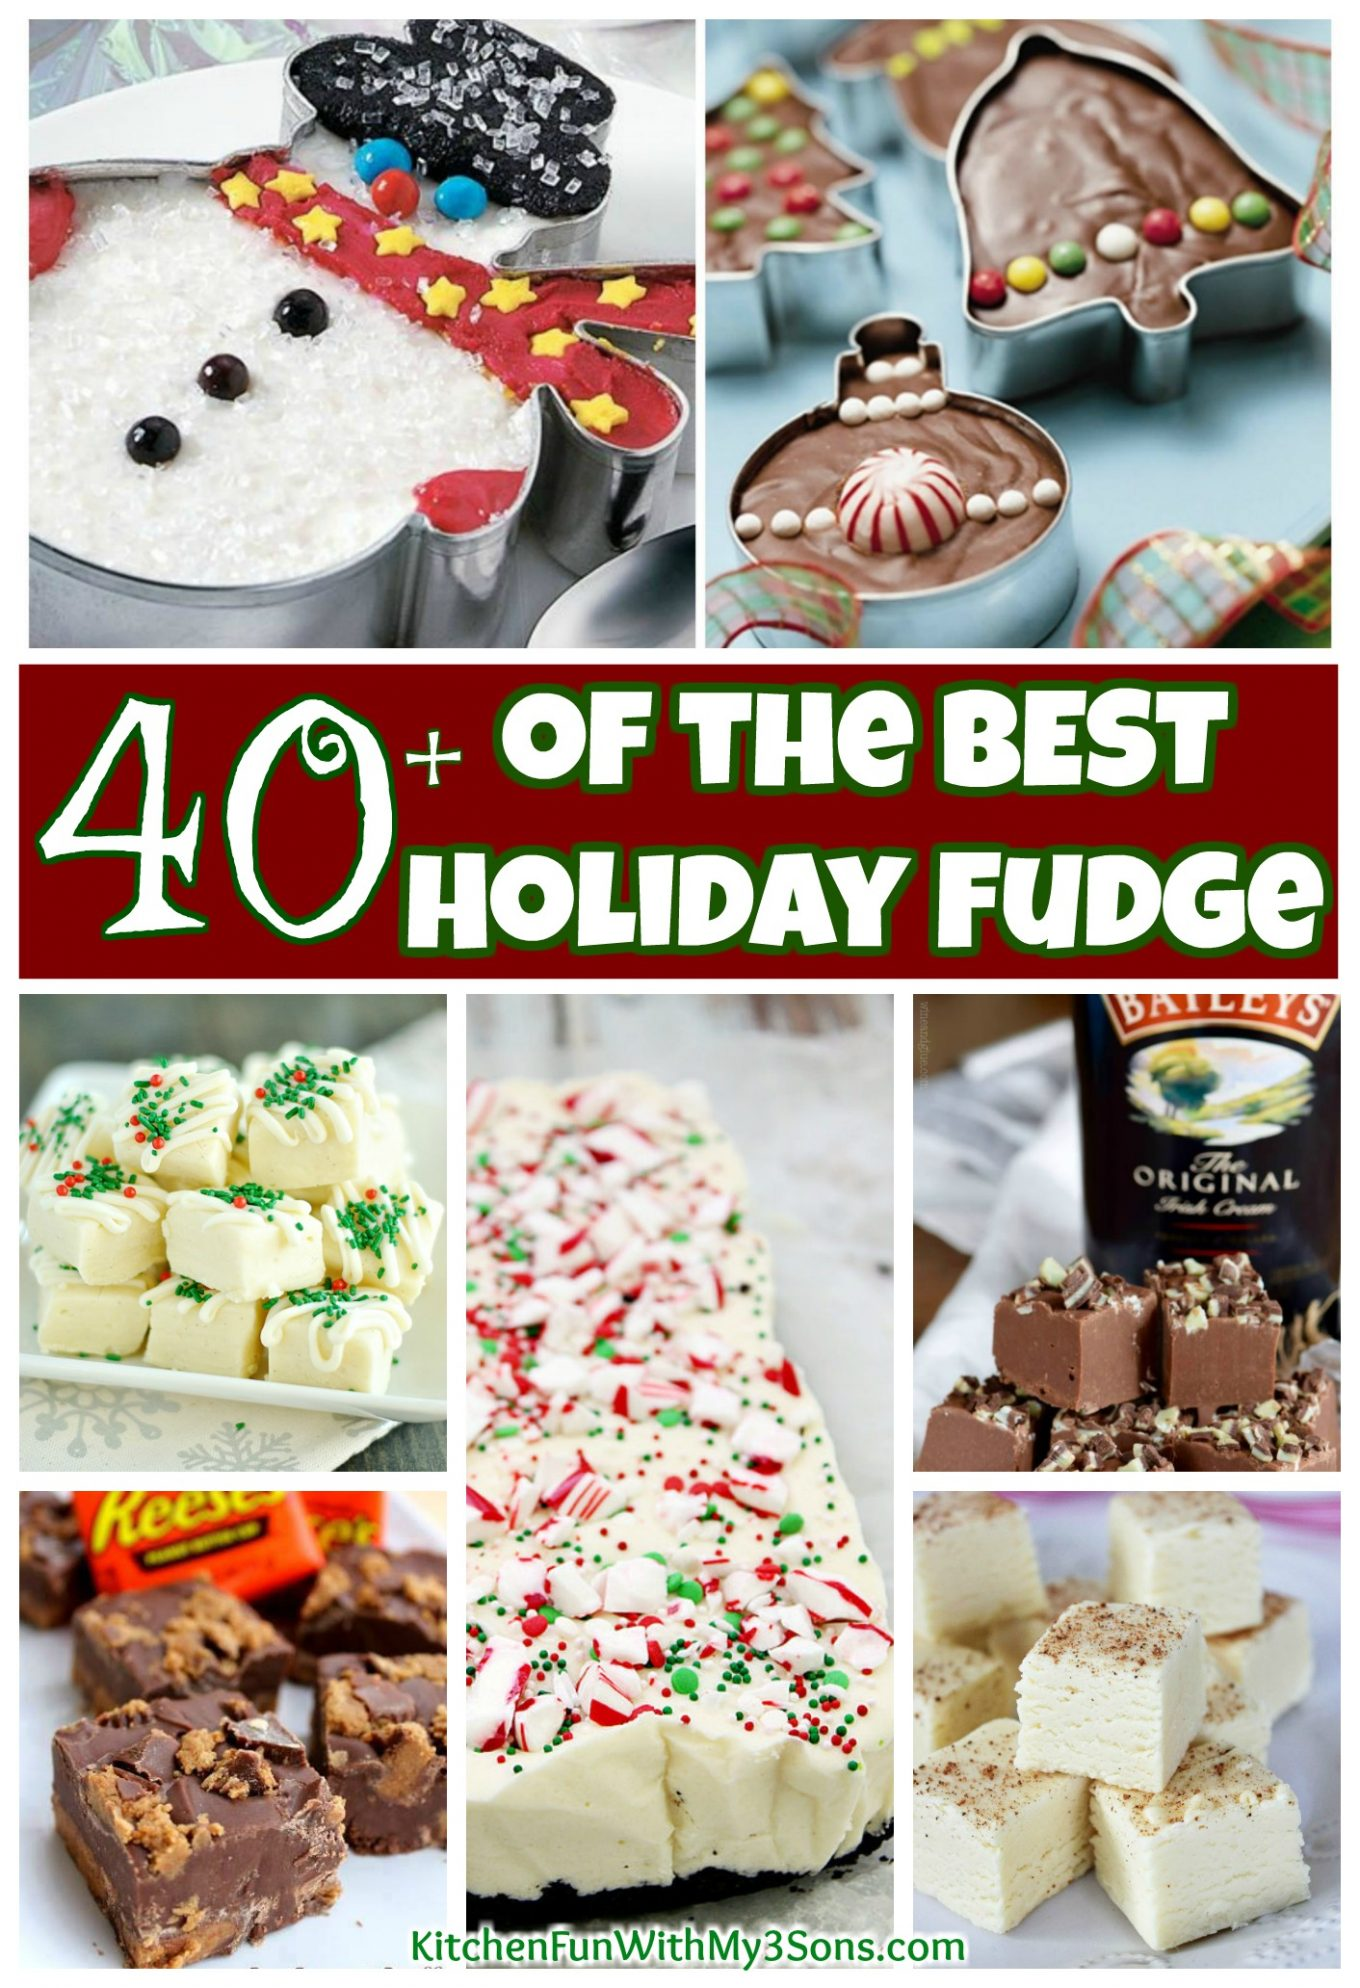 The BEST Holiday Fudge Recipes!